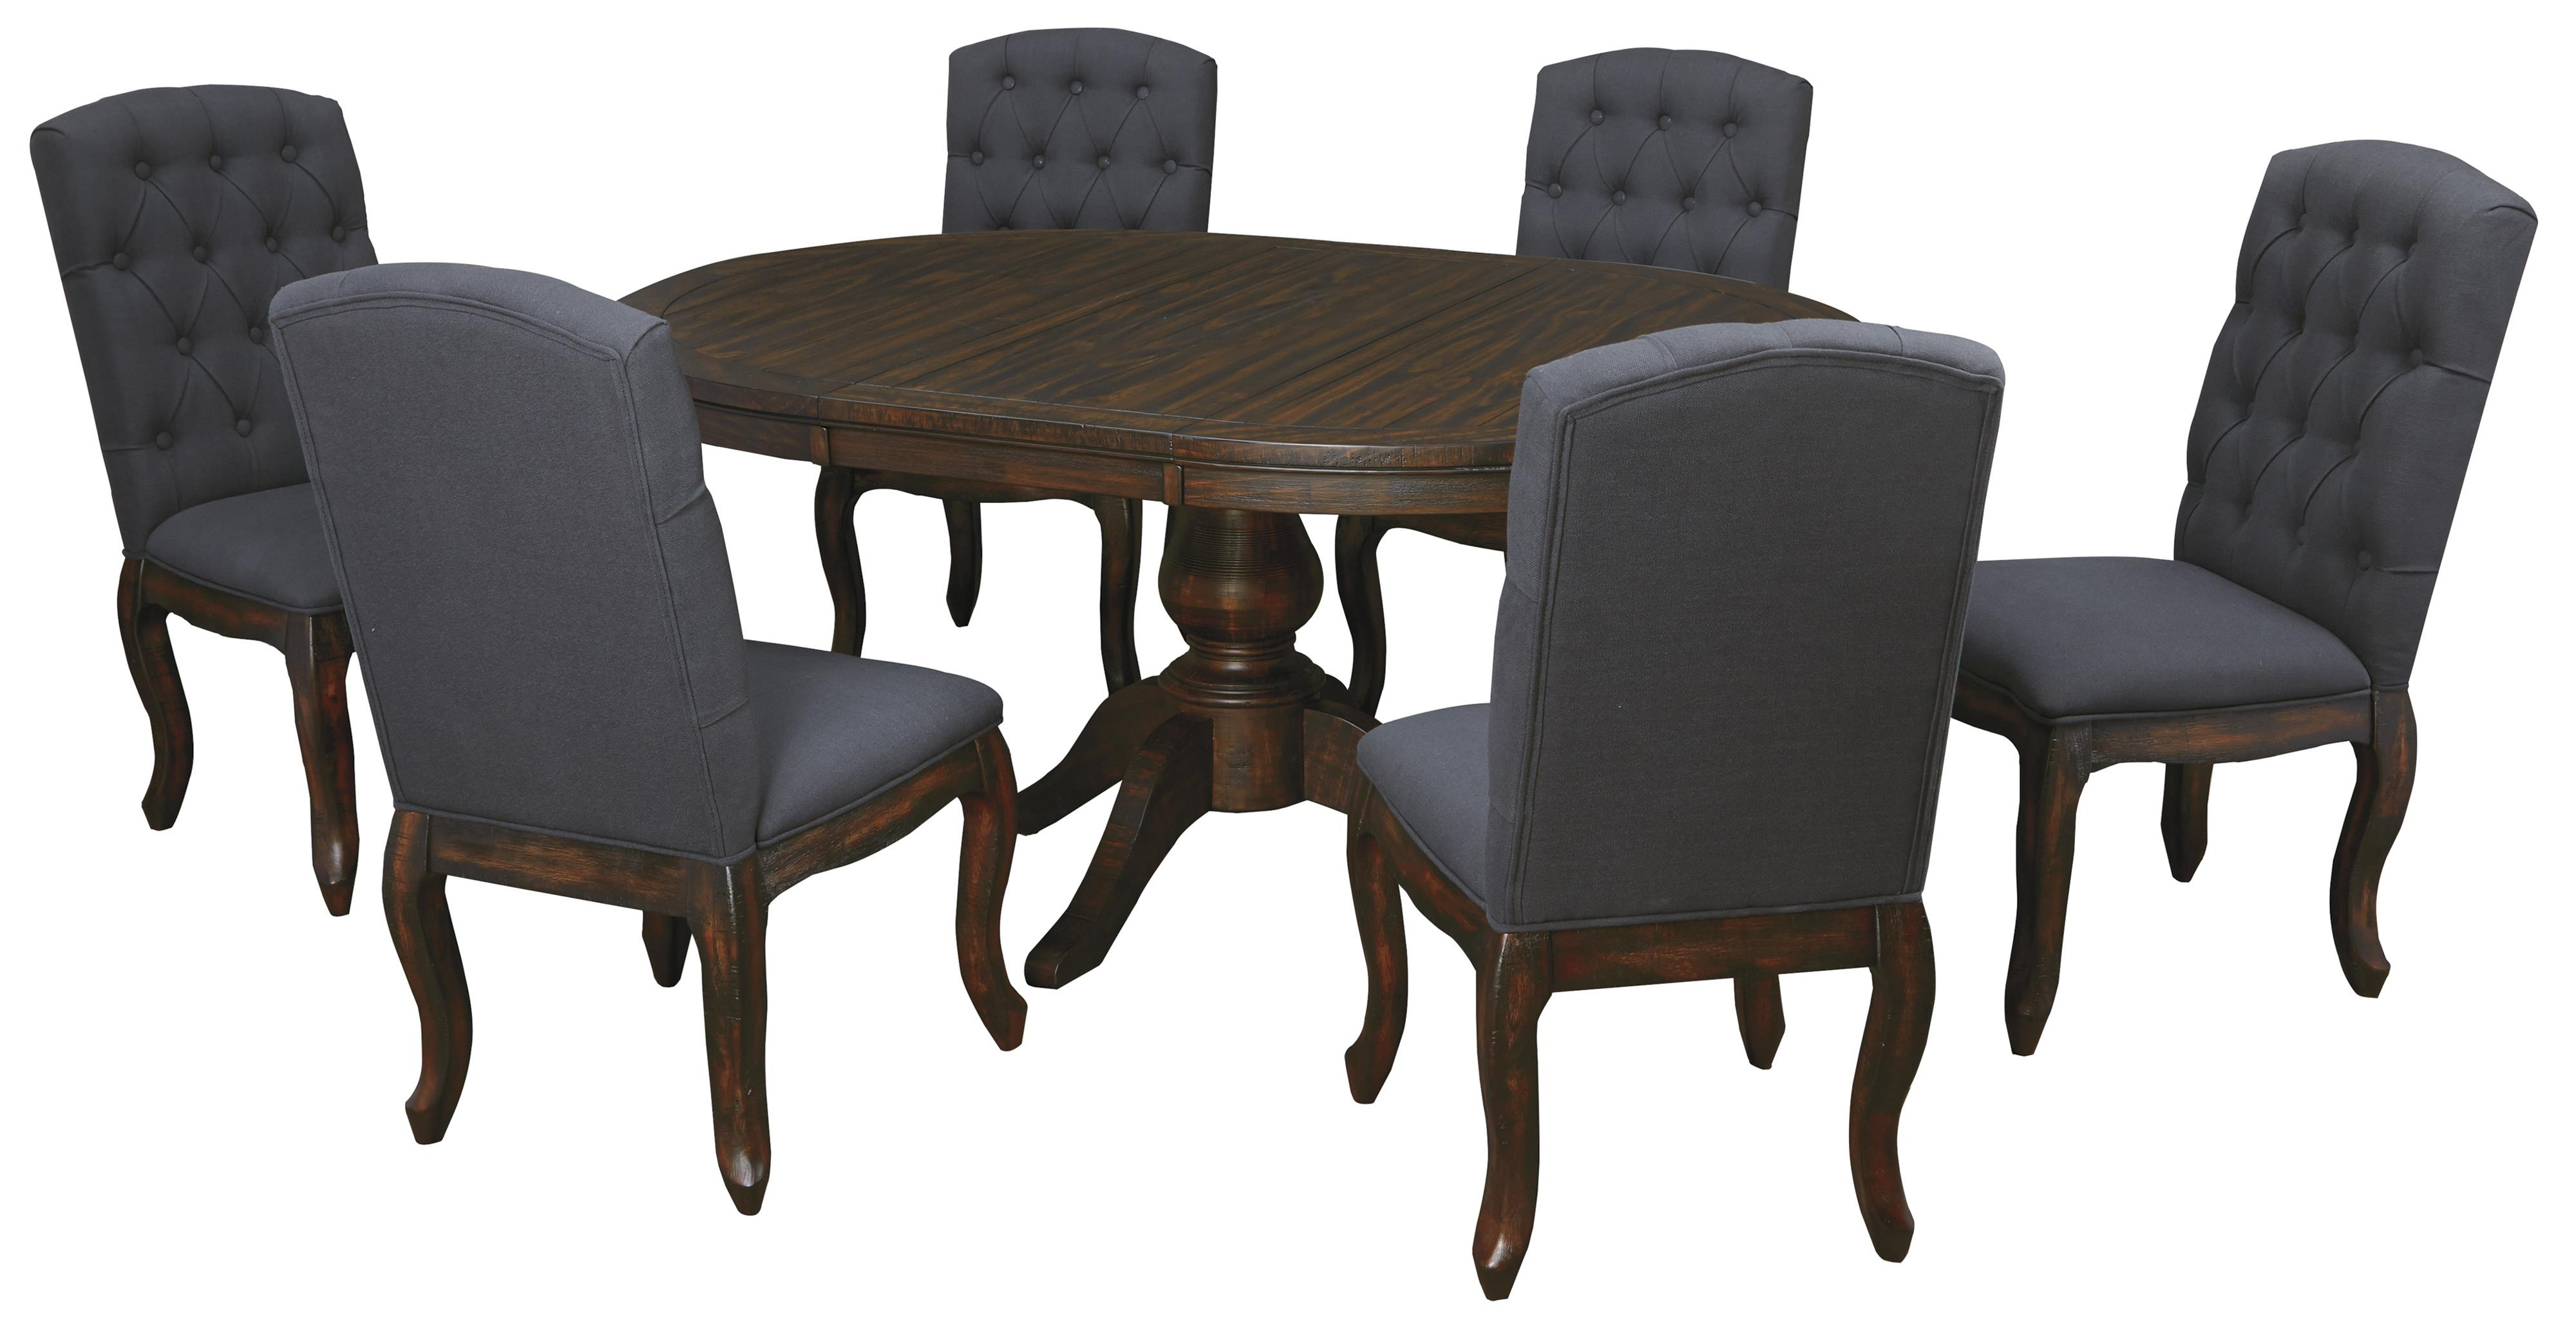 7 Piece Oval Dining Table Set With Upholstered Side Chairs Inside Newest Craftsman 9 Piece Extension Dining Sets With Uph Side Chairs (View 6 of 25)